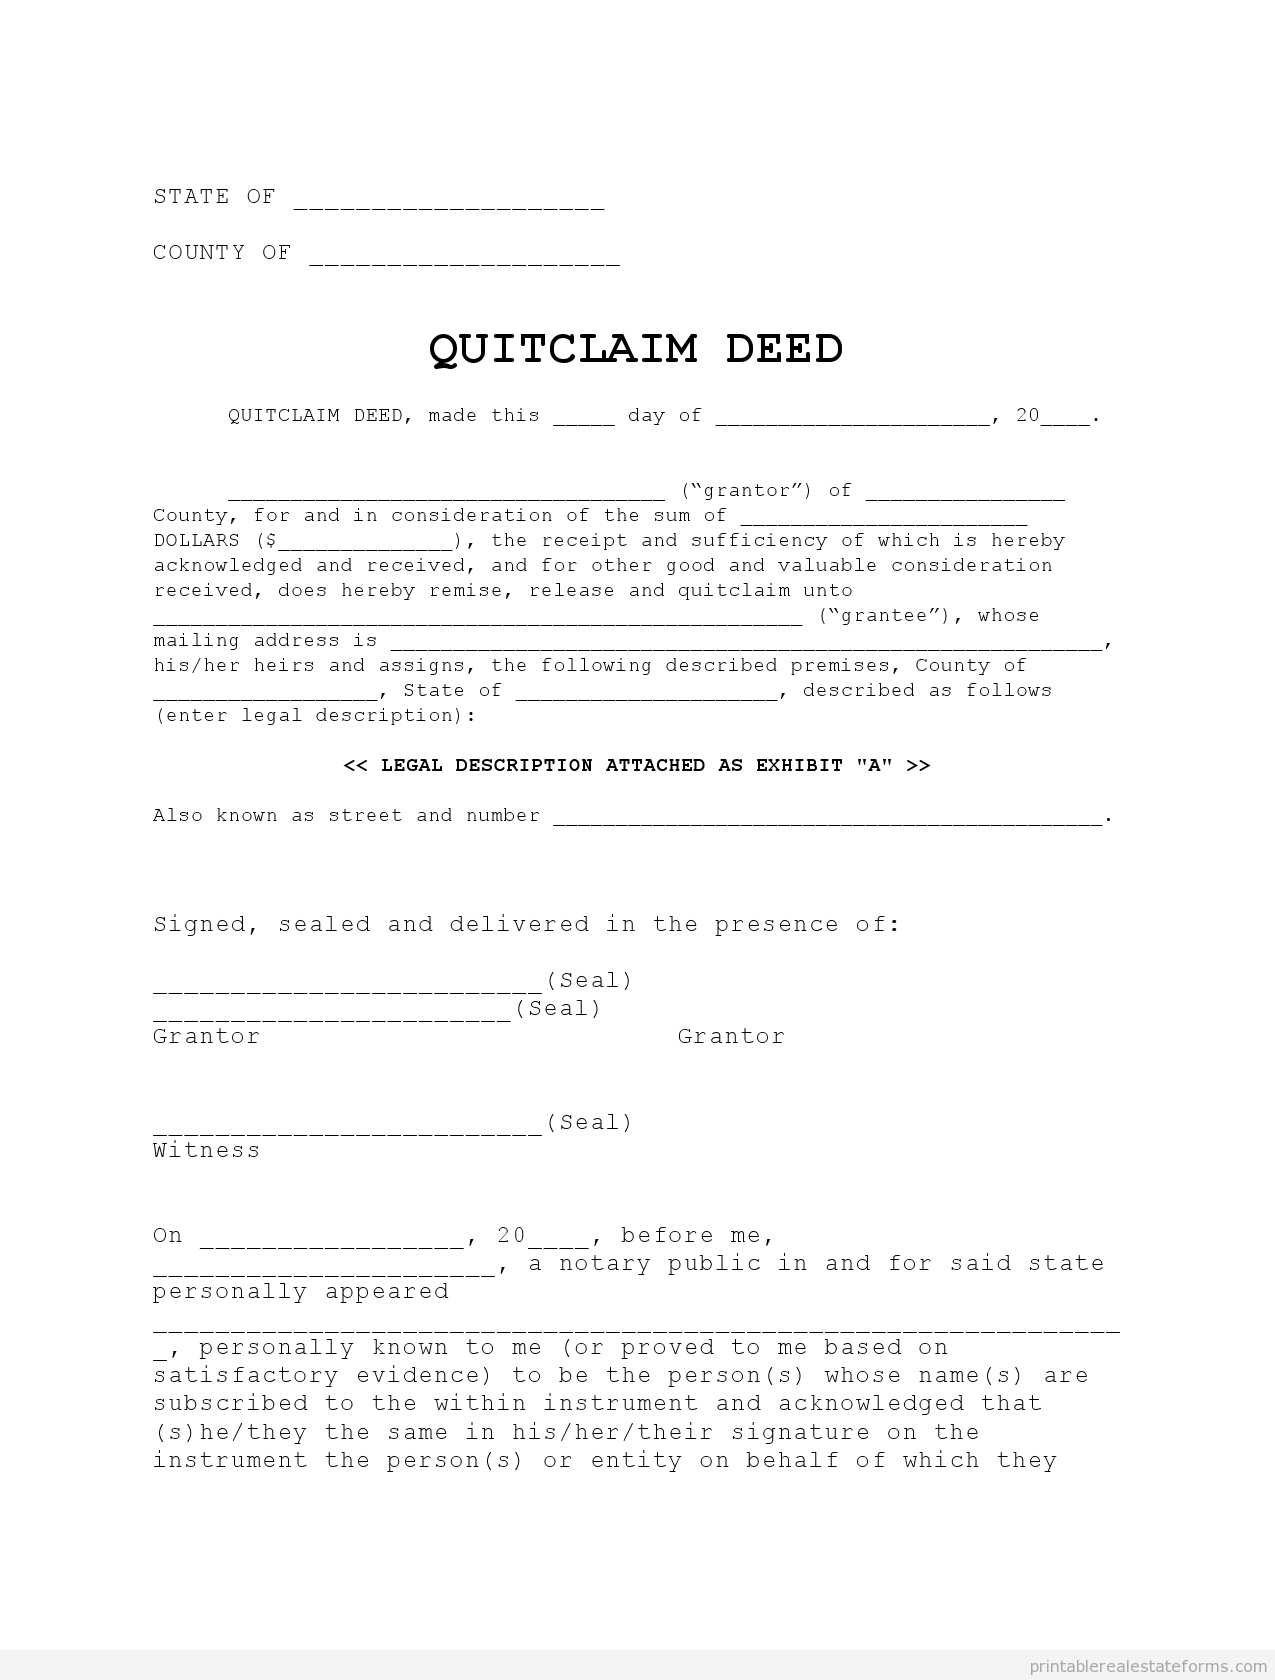 Printable quit claim deed 3 template 2015 – Sample Quitclaim Deed Form